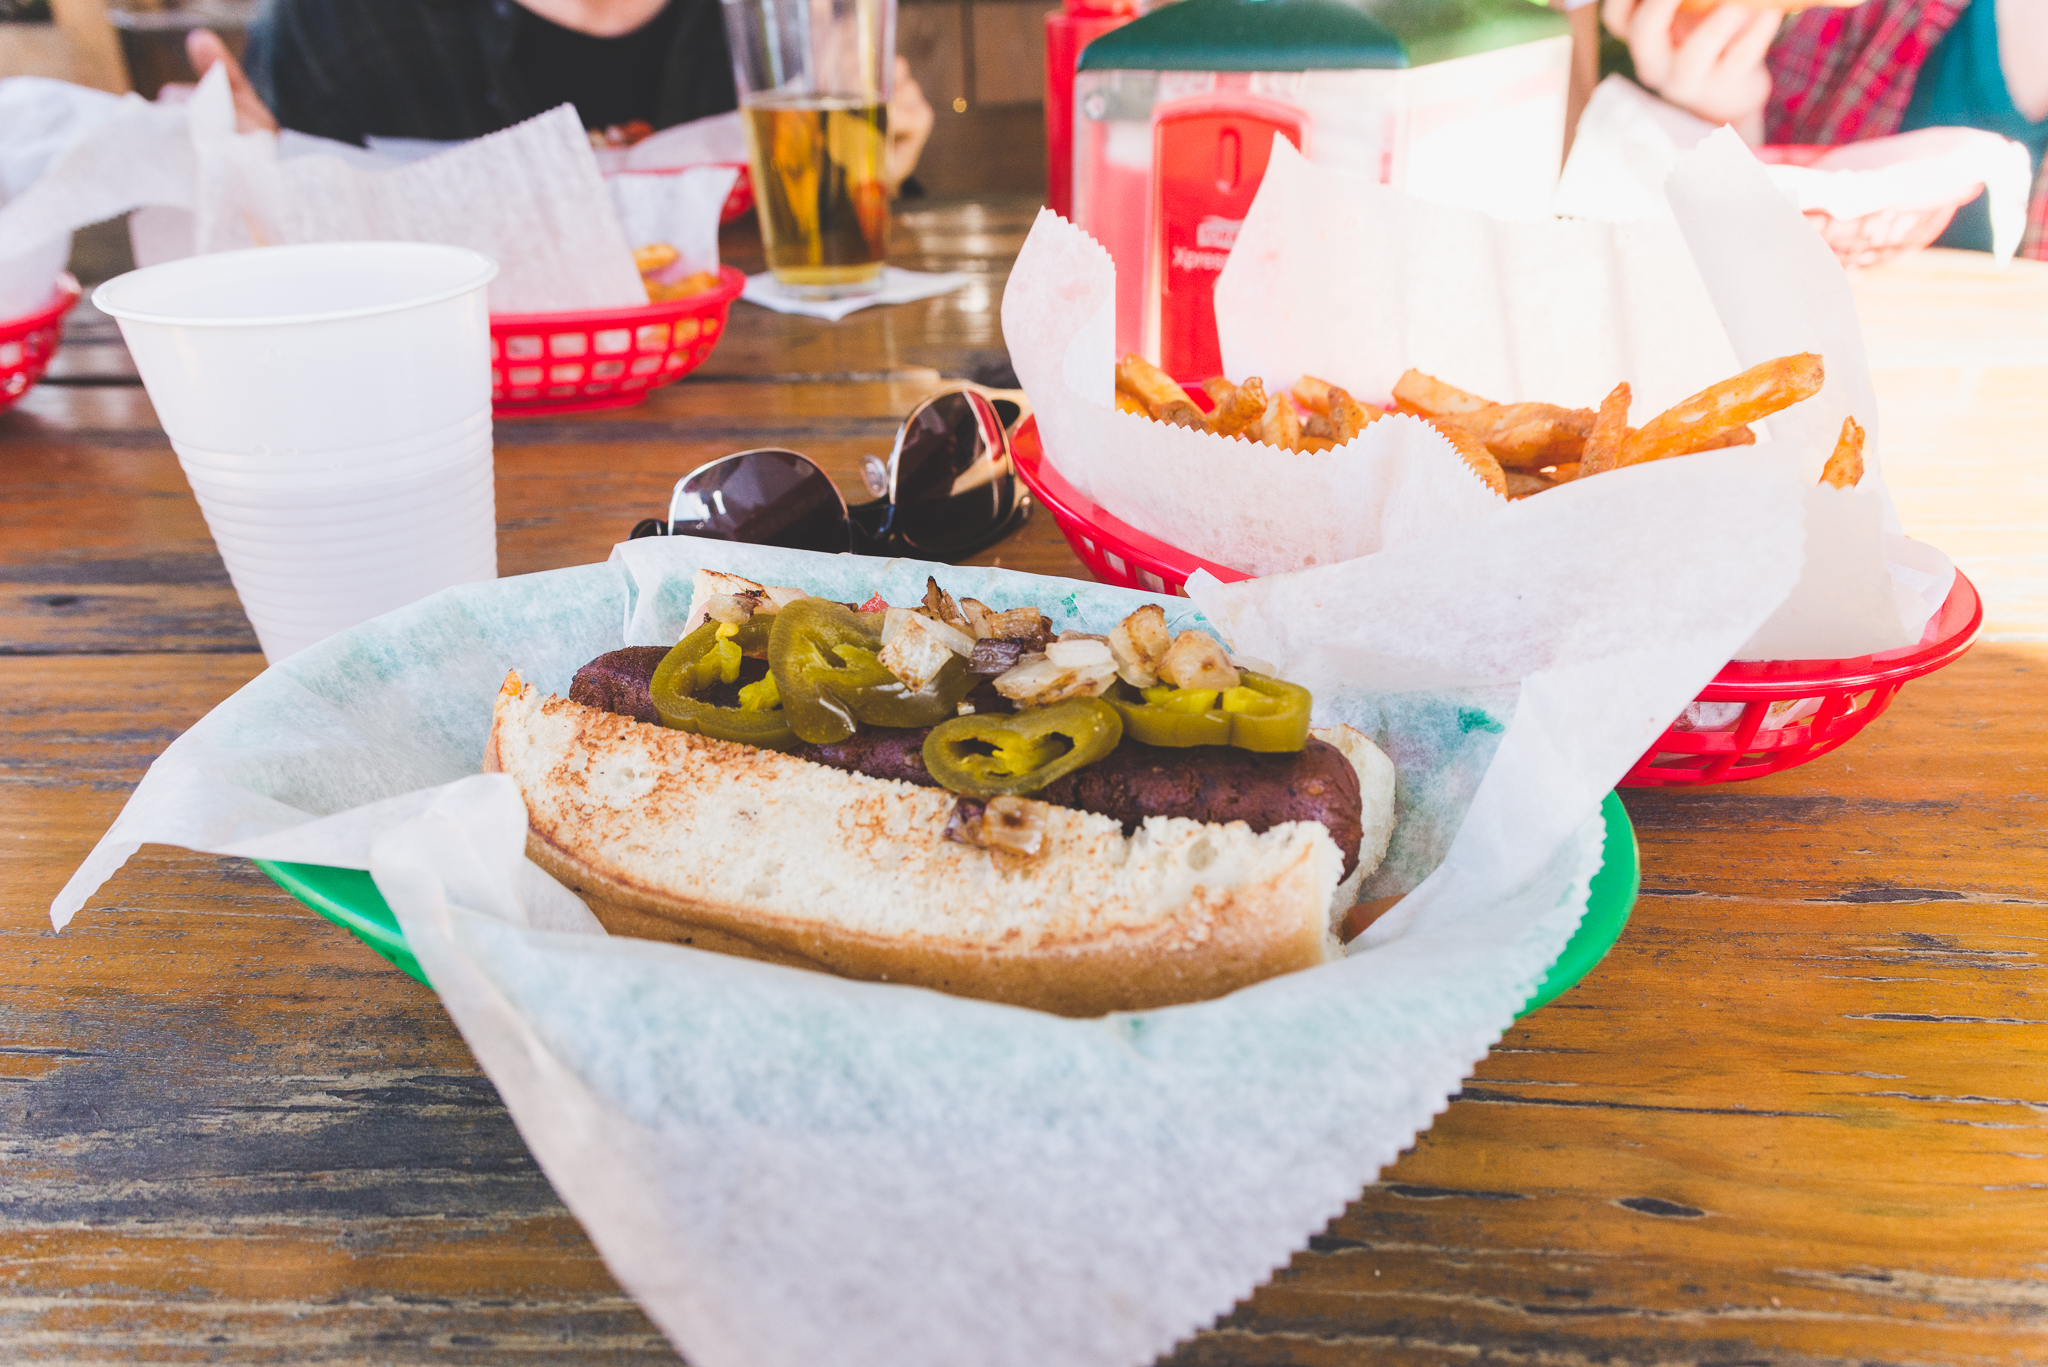 "Spicy chipotle ""sausage"" with hummus, jalapenos, pickles, and tomatoes, soon to be covered in ketchup. / 2/25/16 / Dat Dog / New Orleans, LA"